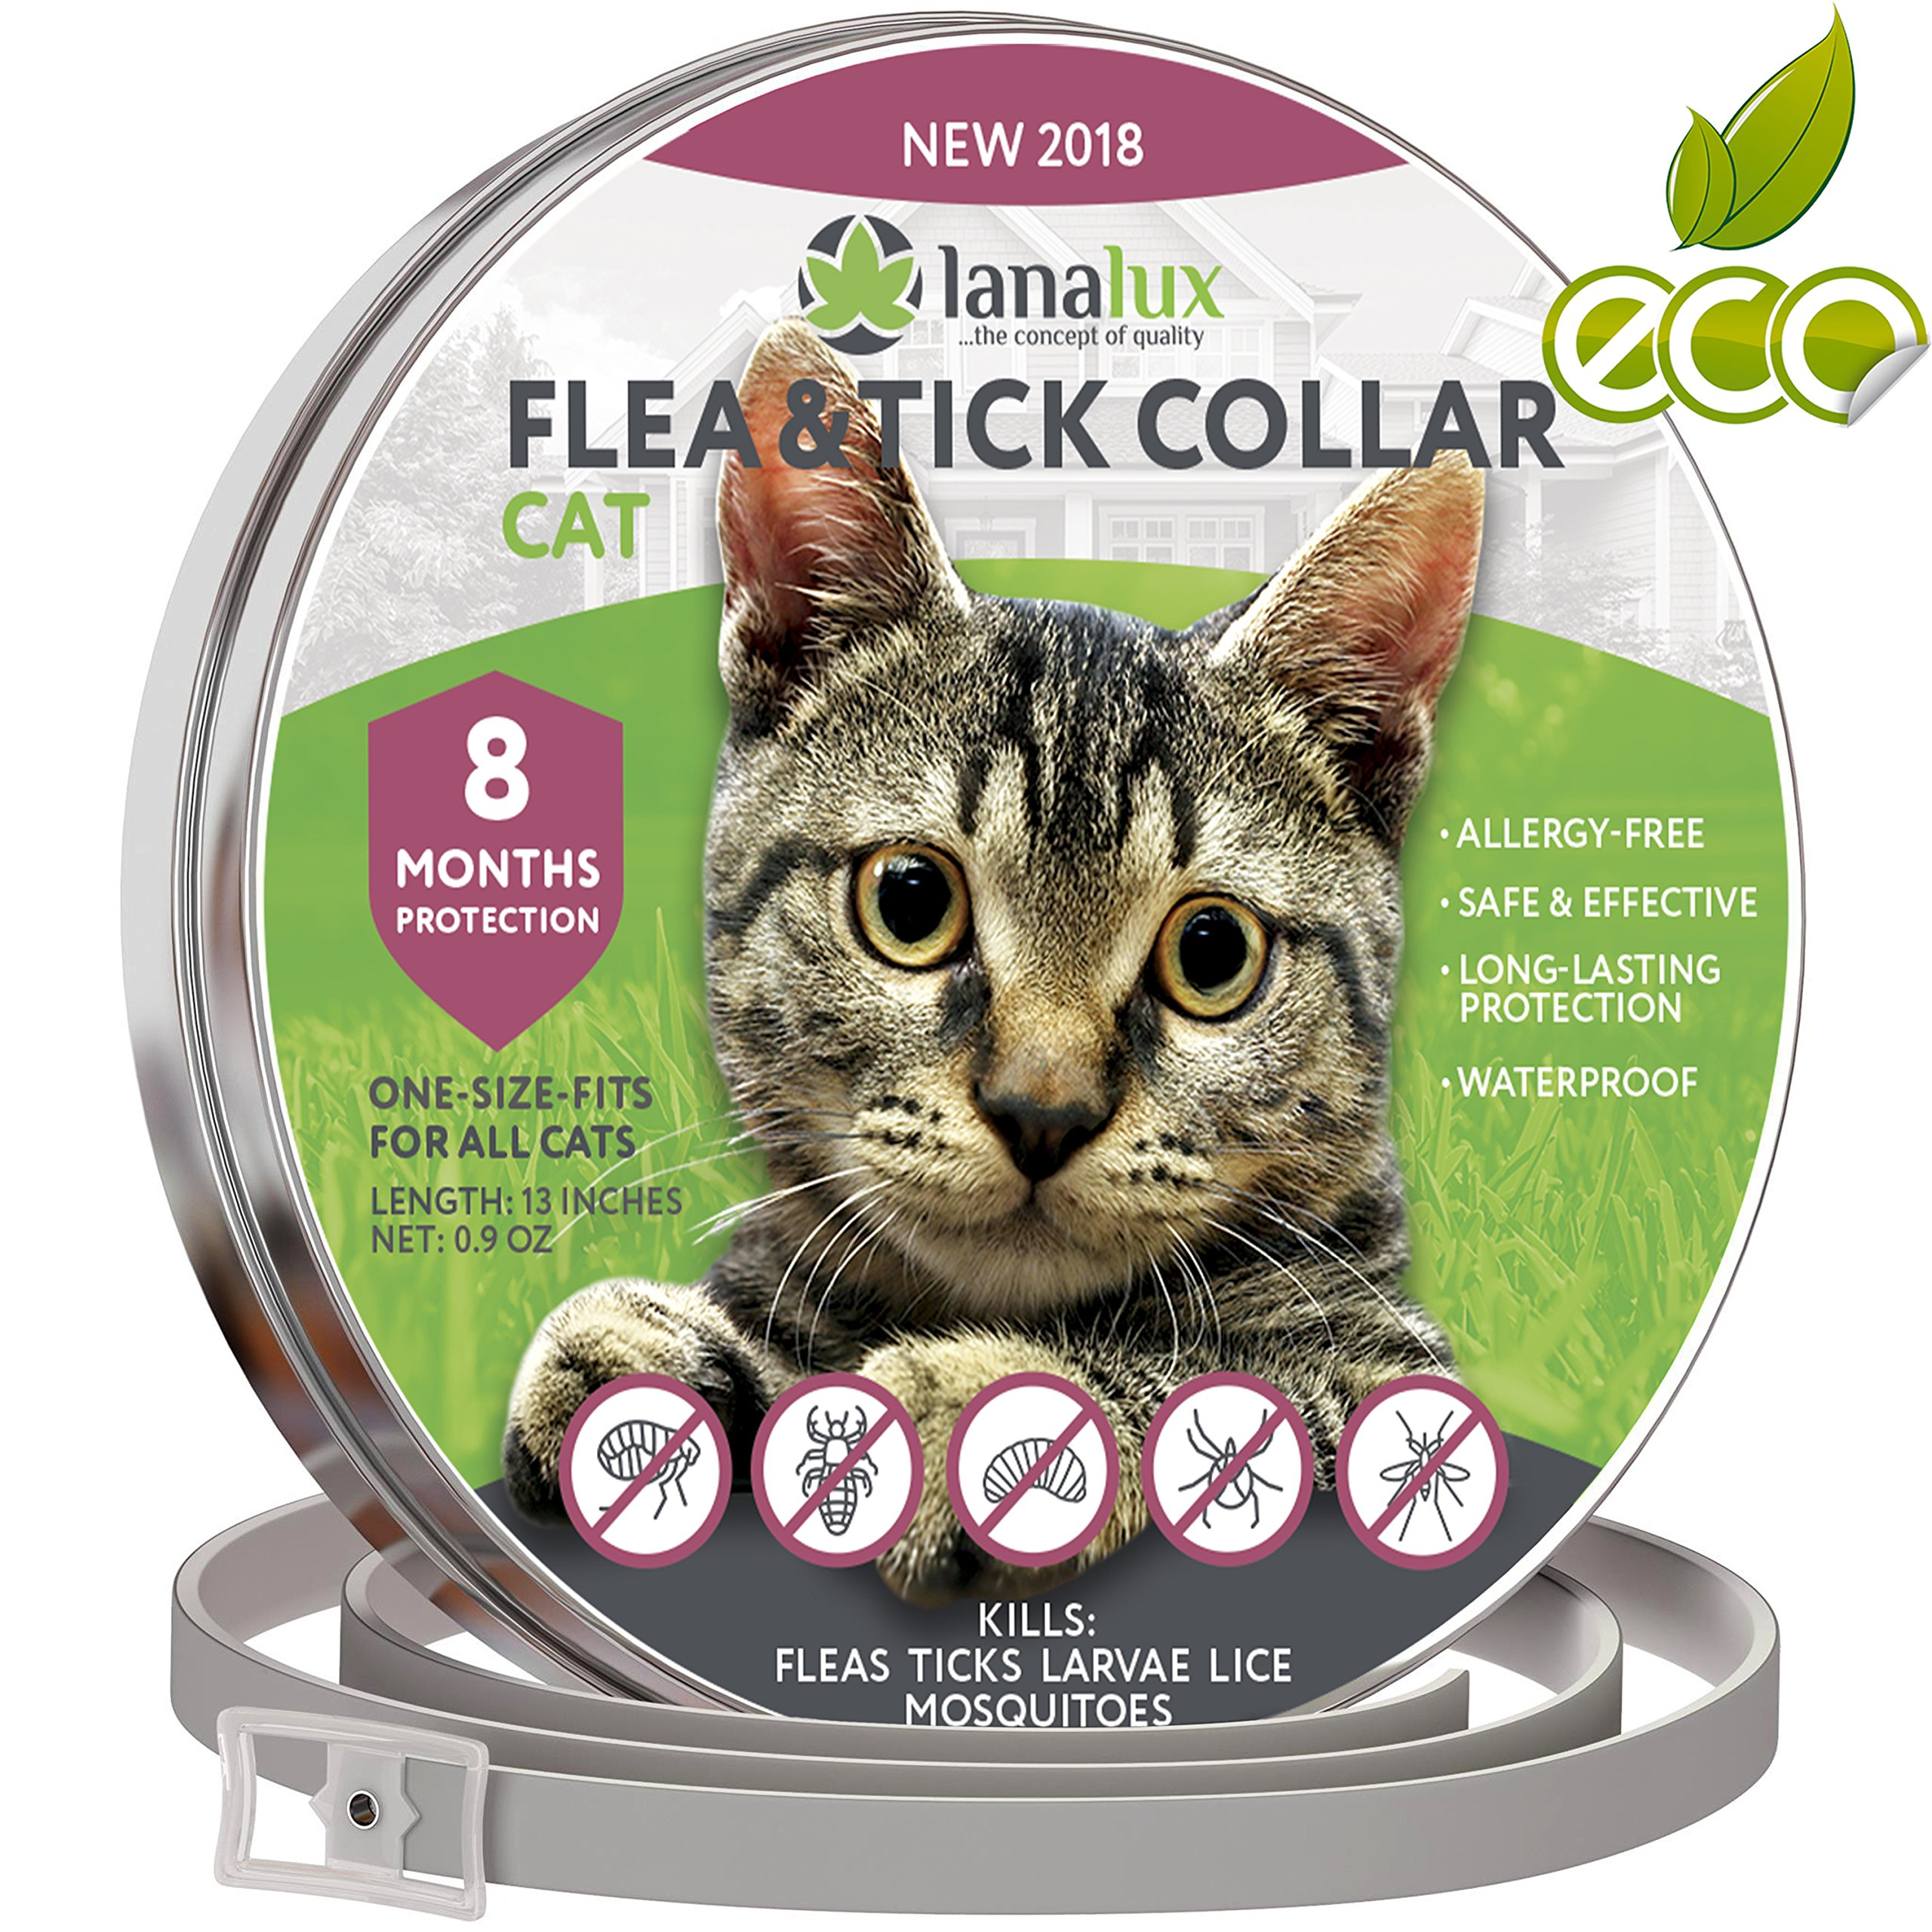 Cat flea Collar Pet Essential Oil Pest Control Collars Flea Tick Prevention Cats 8 Months Flea Control & Cat Flea Treatment Kitten Collar Natural Plant Extracts One Size Fits All